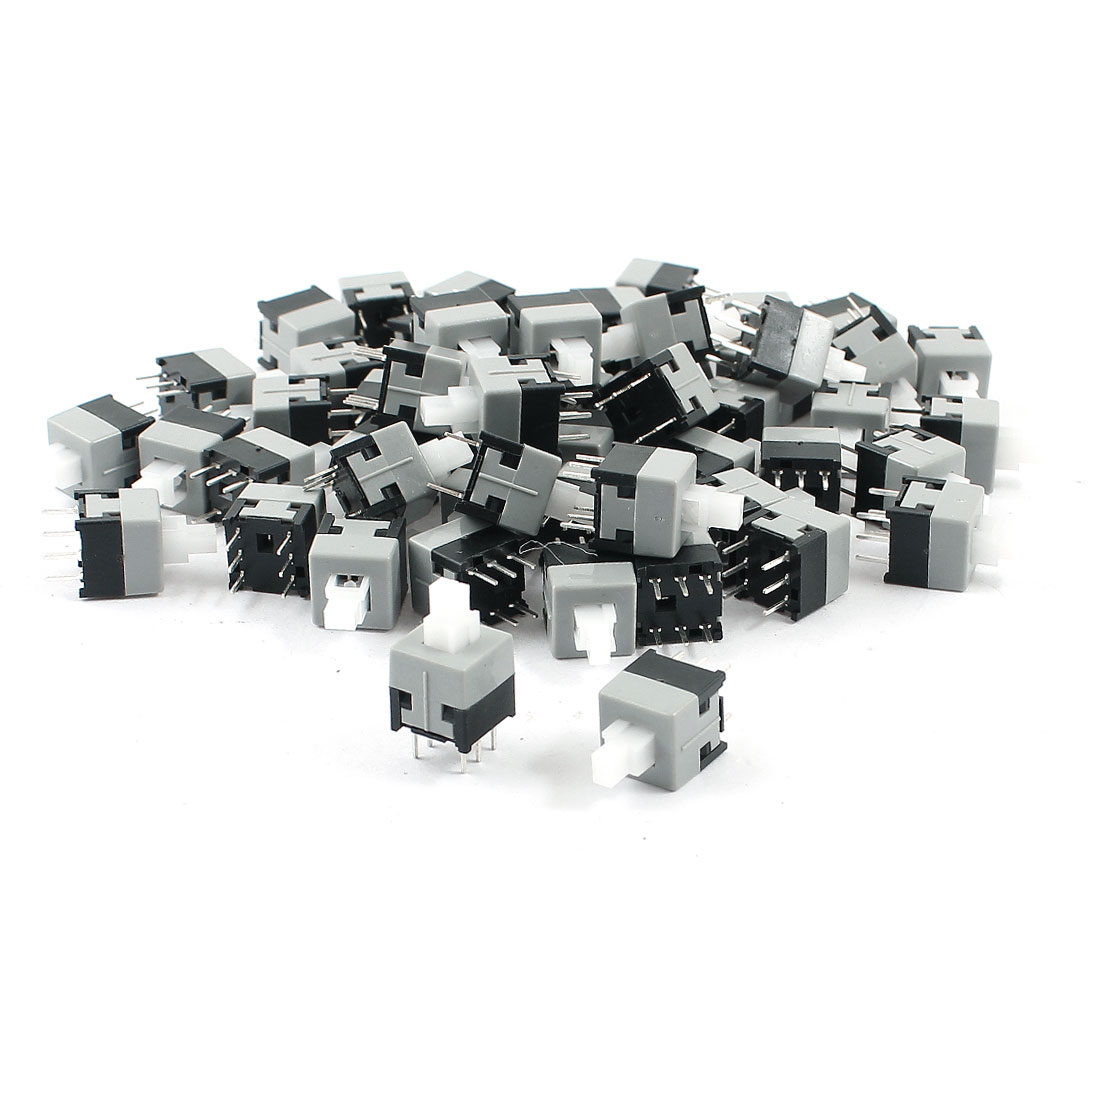 55Pcs 6 Pin Square 8.5mmx8.5mm Self-Locking DPDT Mini Push Button Switch